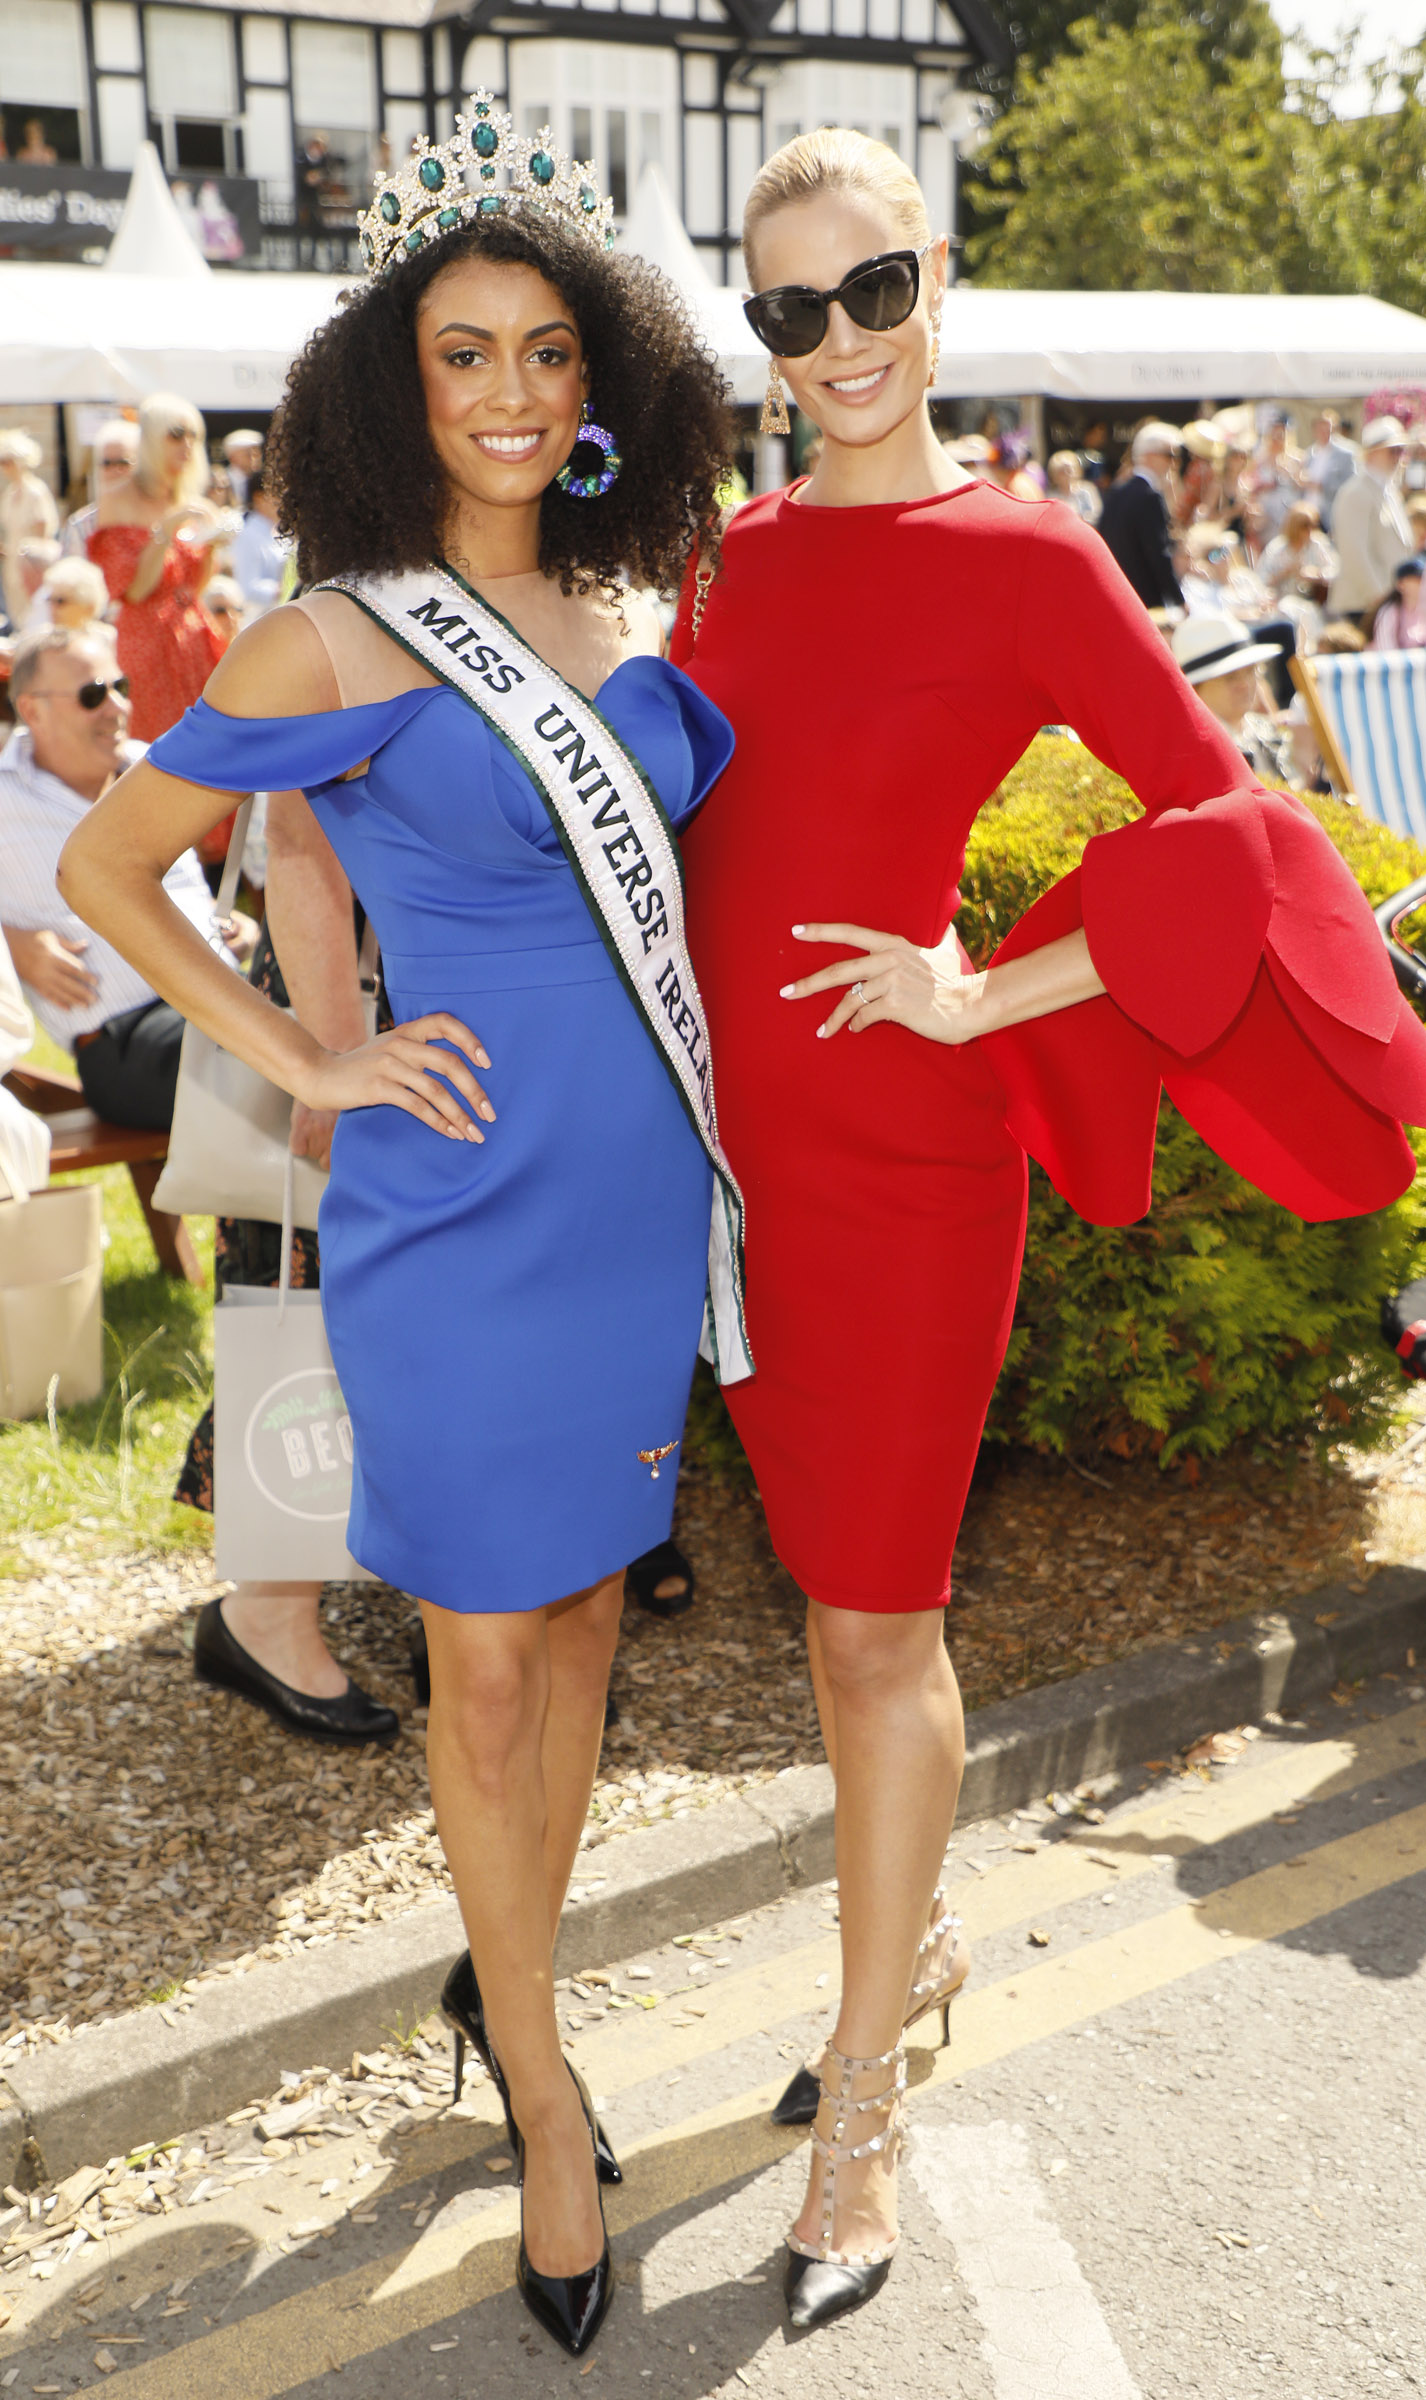 Fionnuala O'Reilly and Brittany Mason at the Dundrum Town Centre Ladies' Day at the Dublin Horse Show in the RDS. Photo: Kieran Harnett